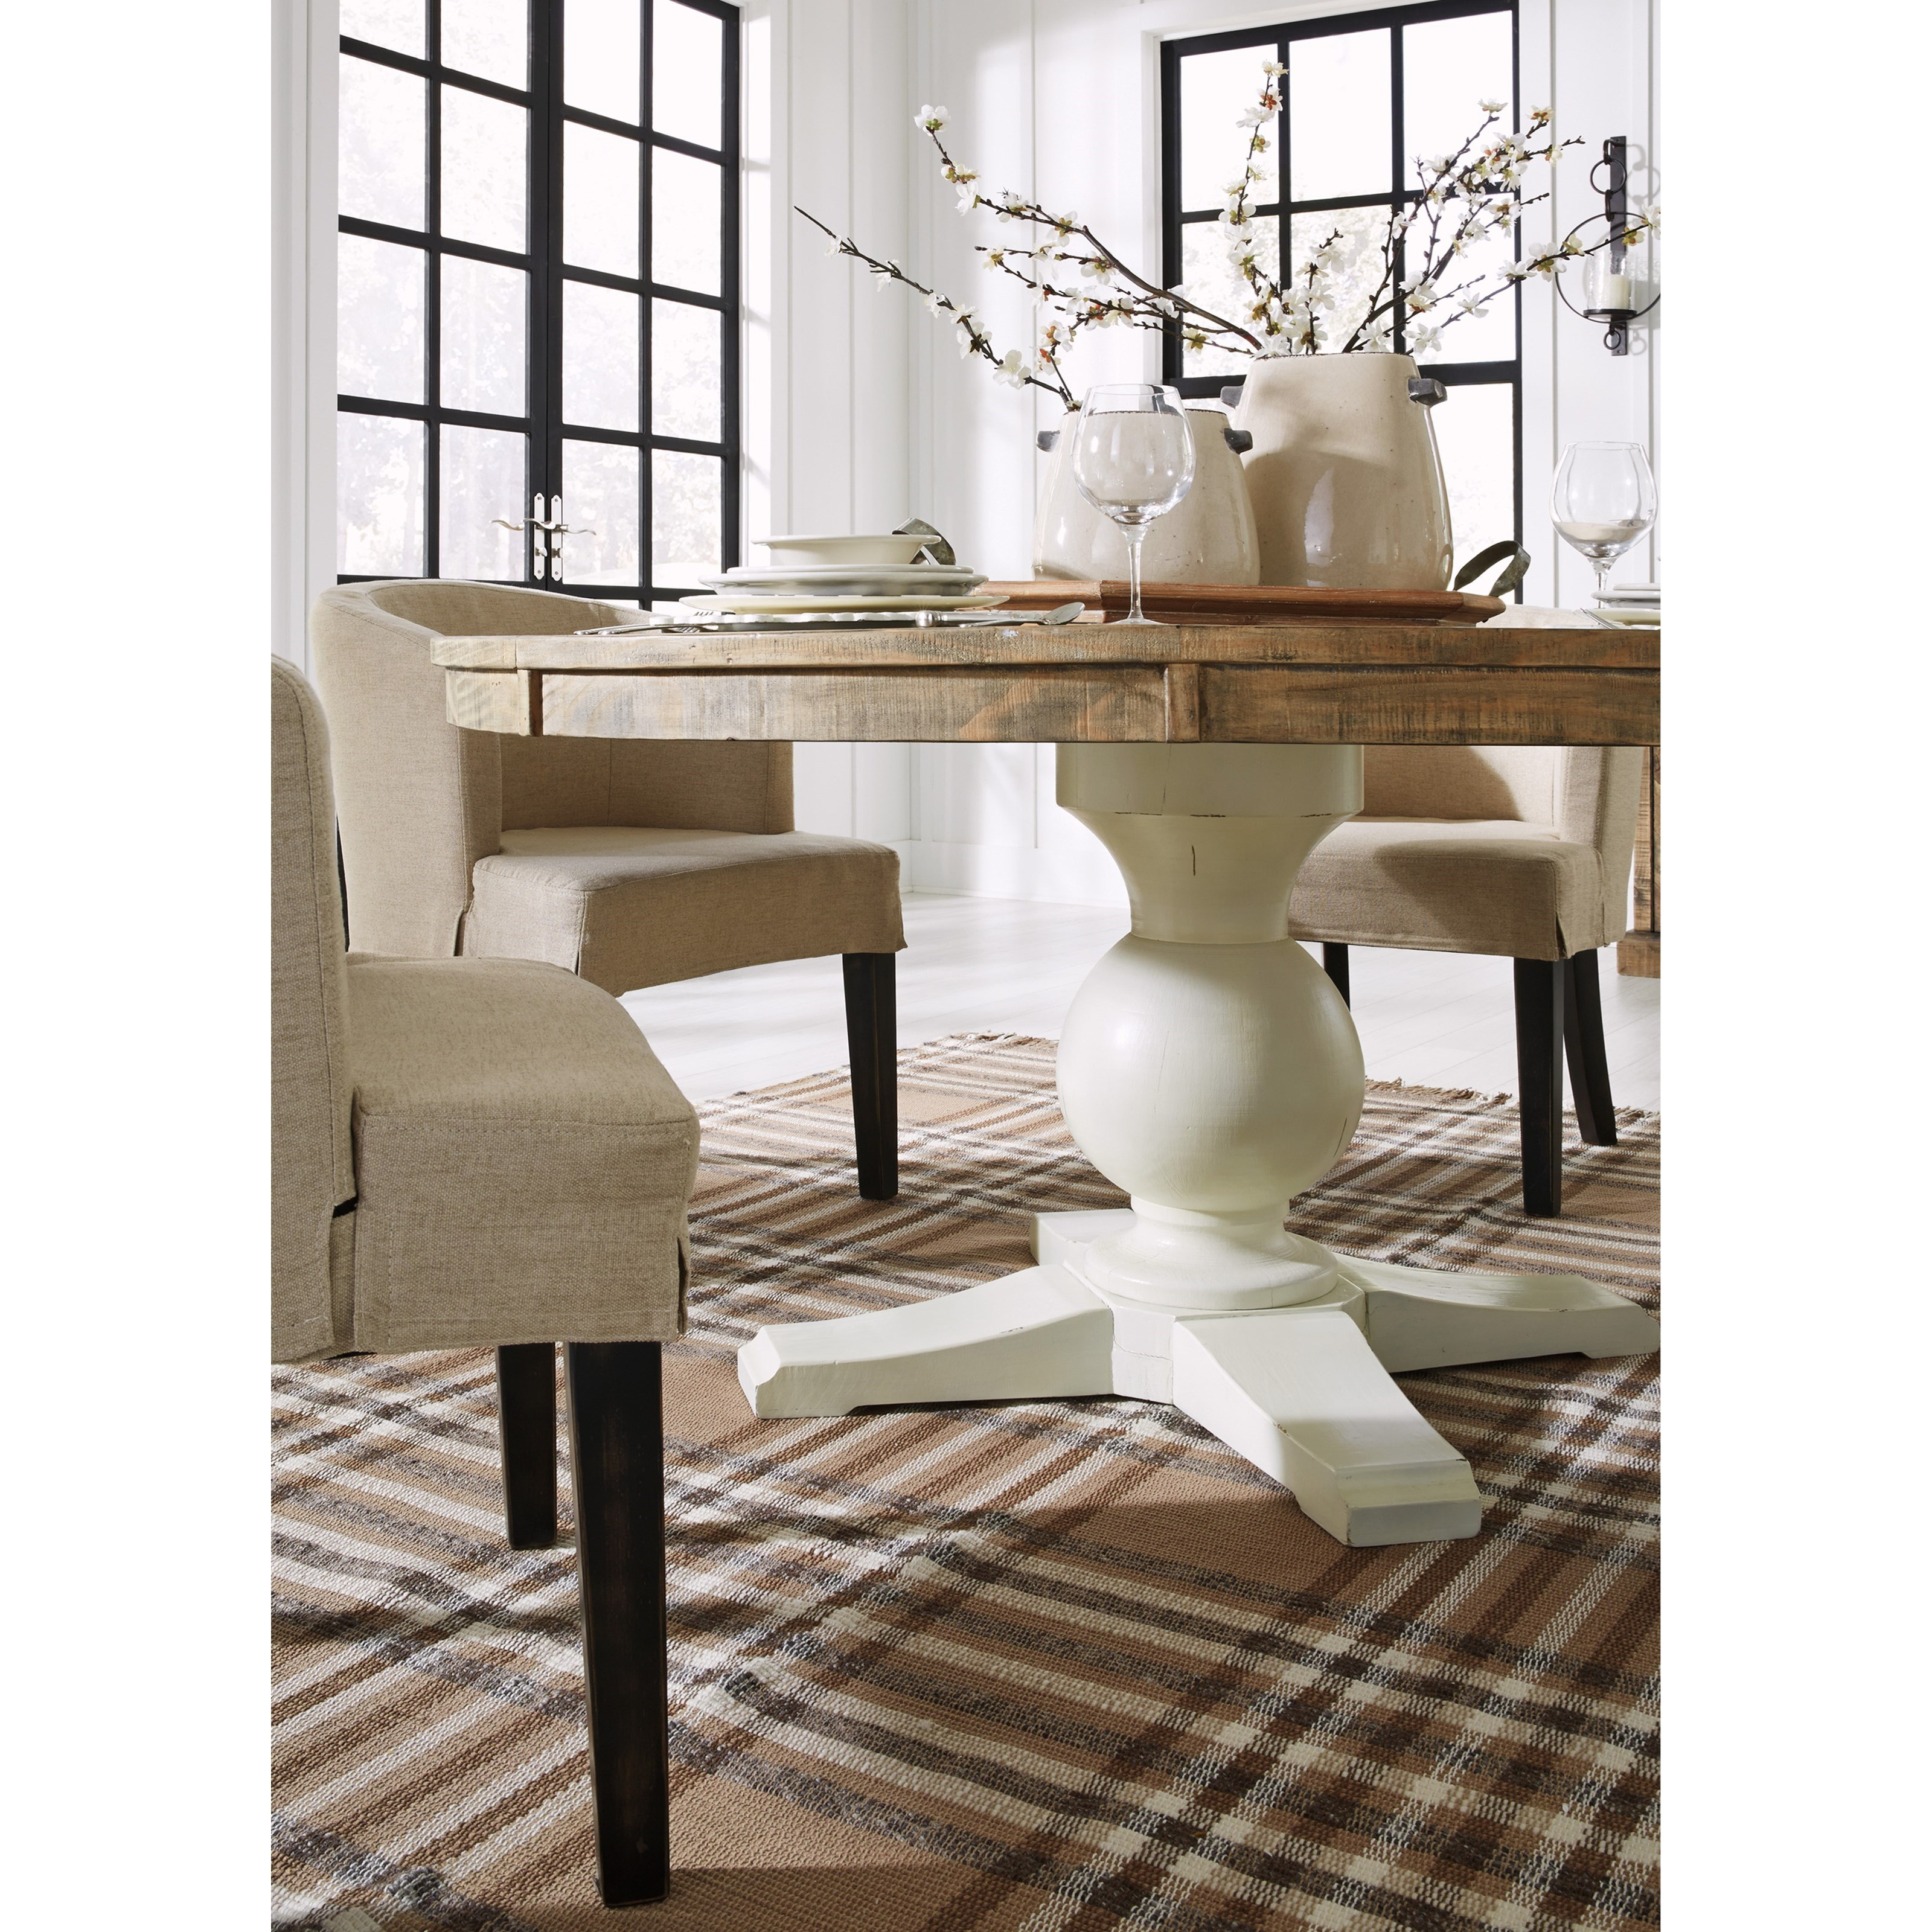 Ashley Dining Table: Signature Design By Ashley Grindleburg Round Dining Room